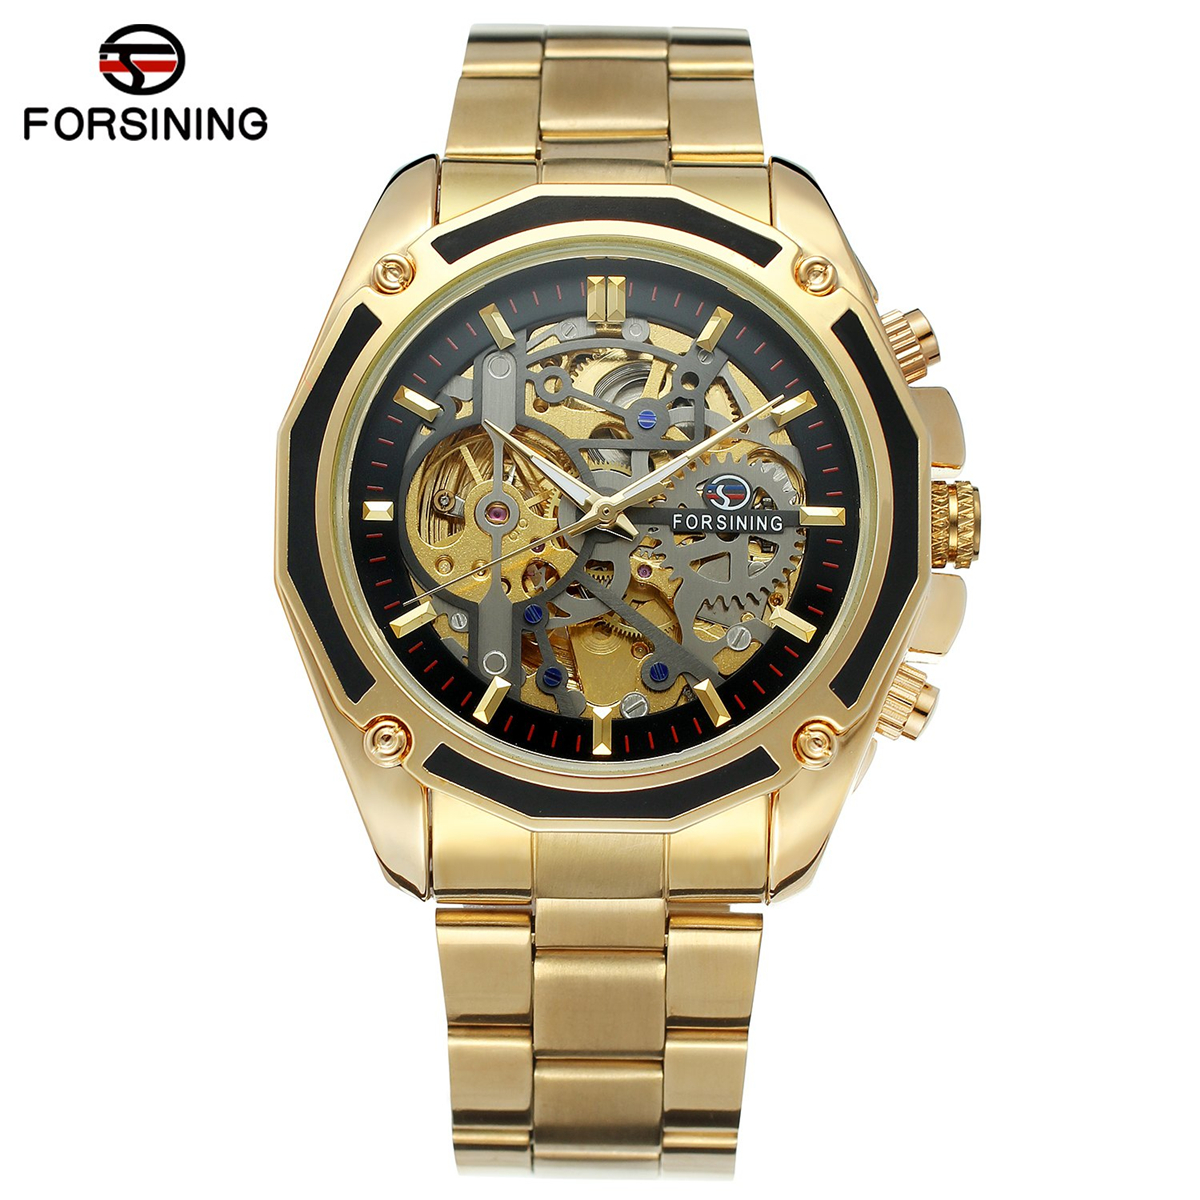 Forsining Steampunk Gold Watches Men Automatic Mechanical Skeleton Watch Men Steel Wristwatch Male Clock Gift Relogio Masculino unique smooth case pocket watch mechanical automatic watches with pendant chain necklace men women gift relogio de bolso